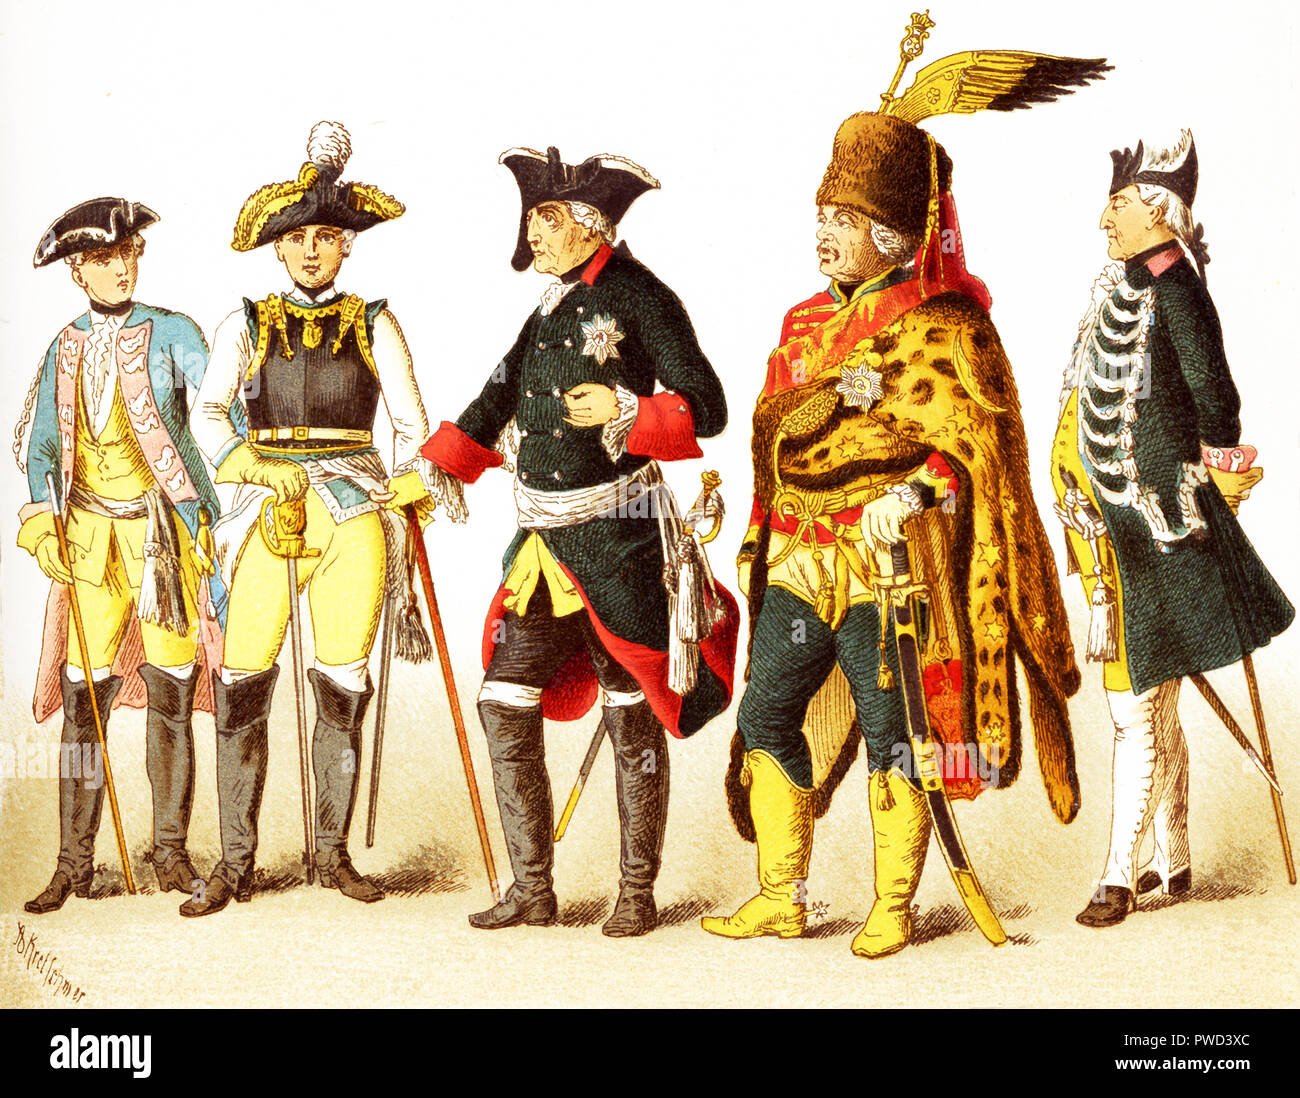 The Figures represented here are all Germans in 1700s and are, from left to right: an officer of dragoons, general of cuirrasiers, Frederick II, General Ziethen, officer of infantry of the guard. The illustration dates to 1882. Stock Photo